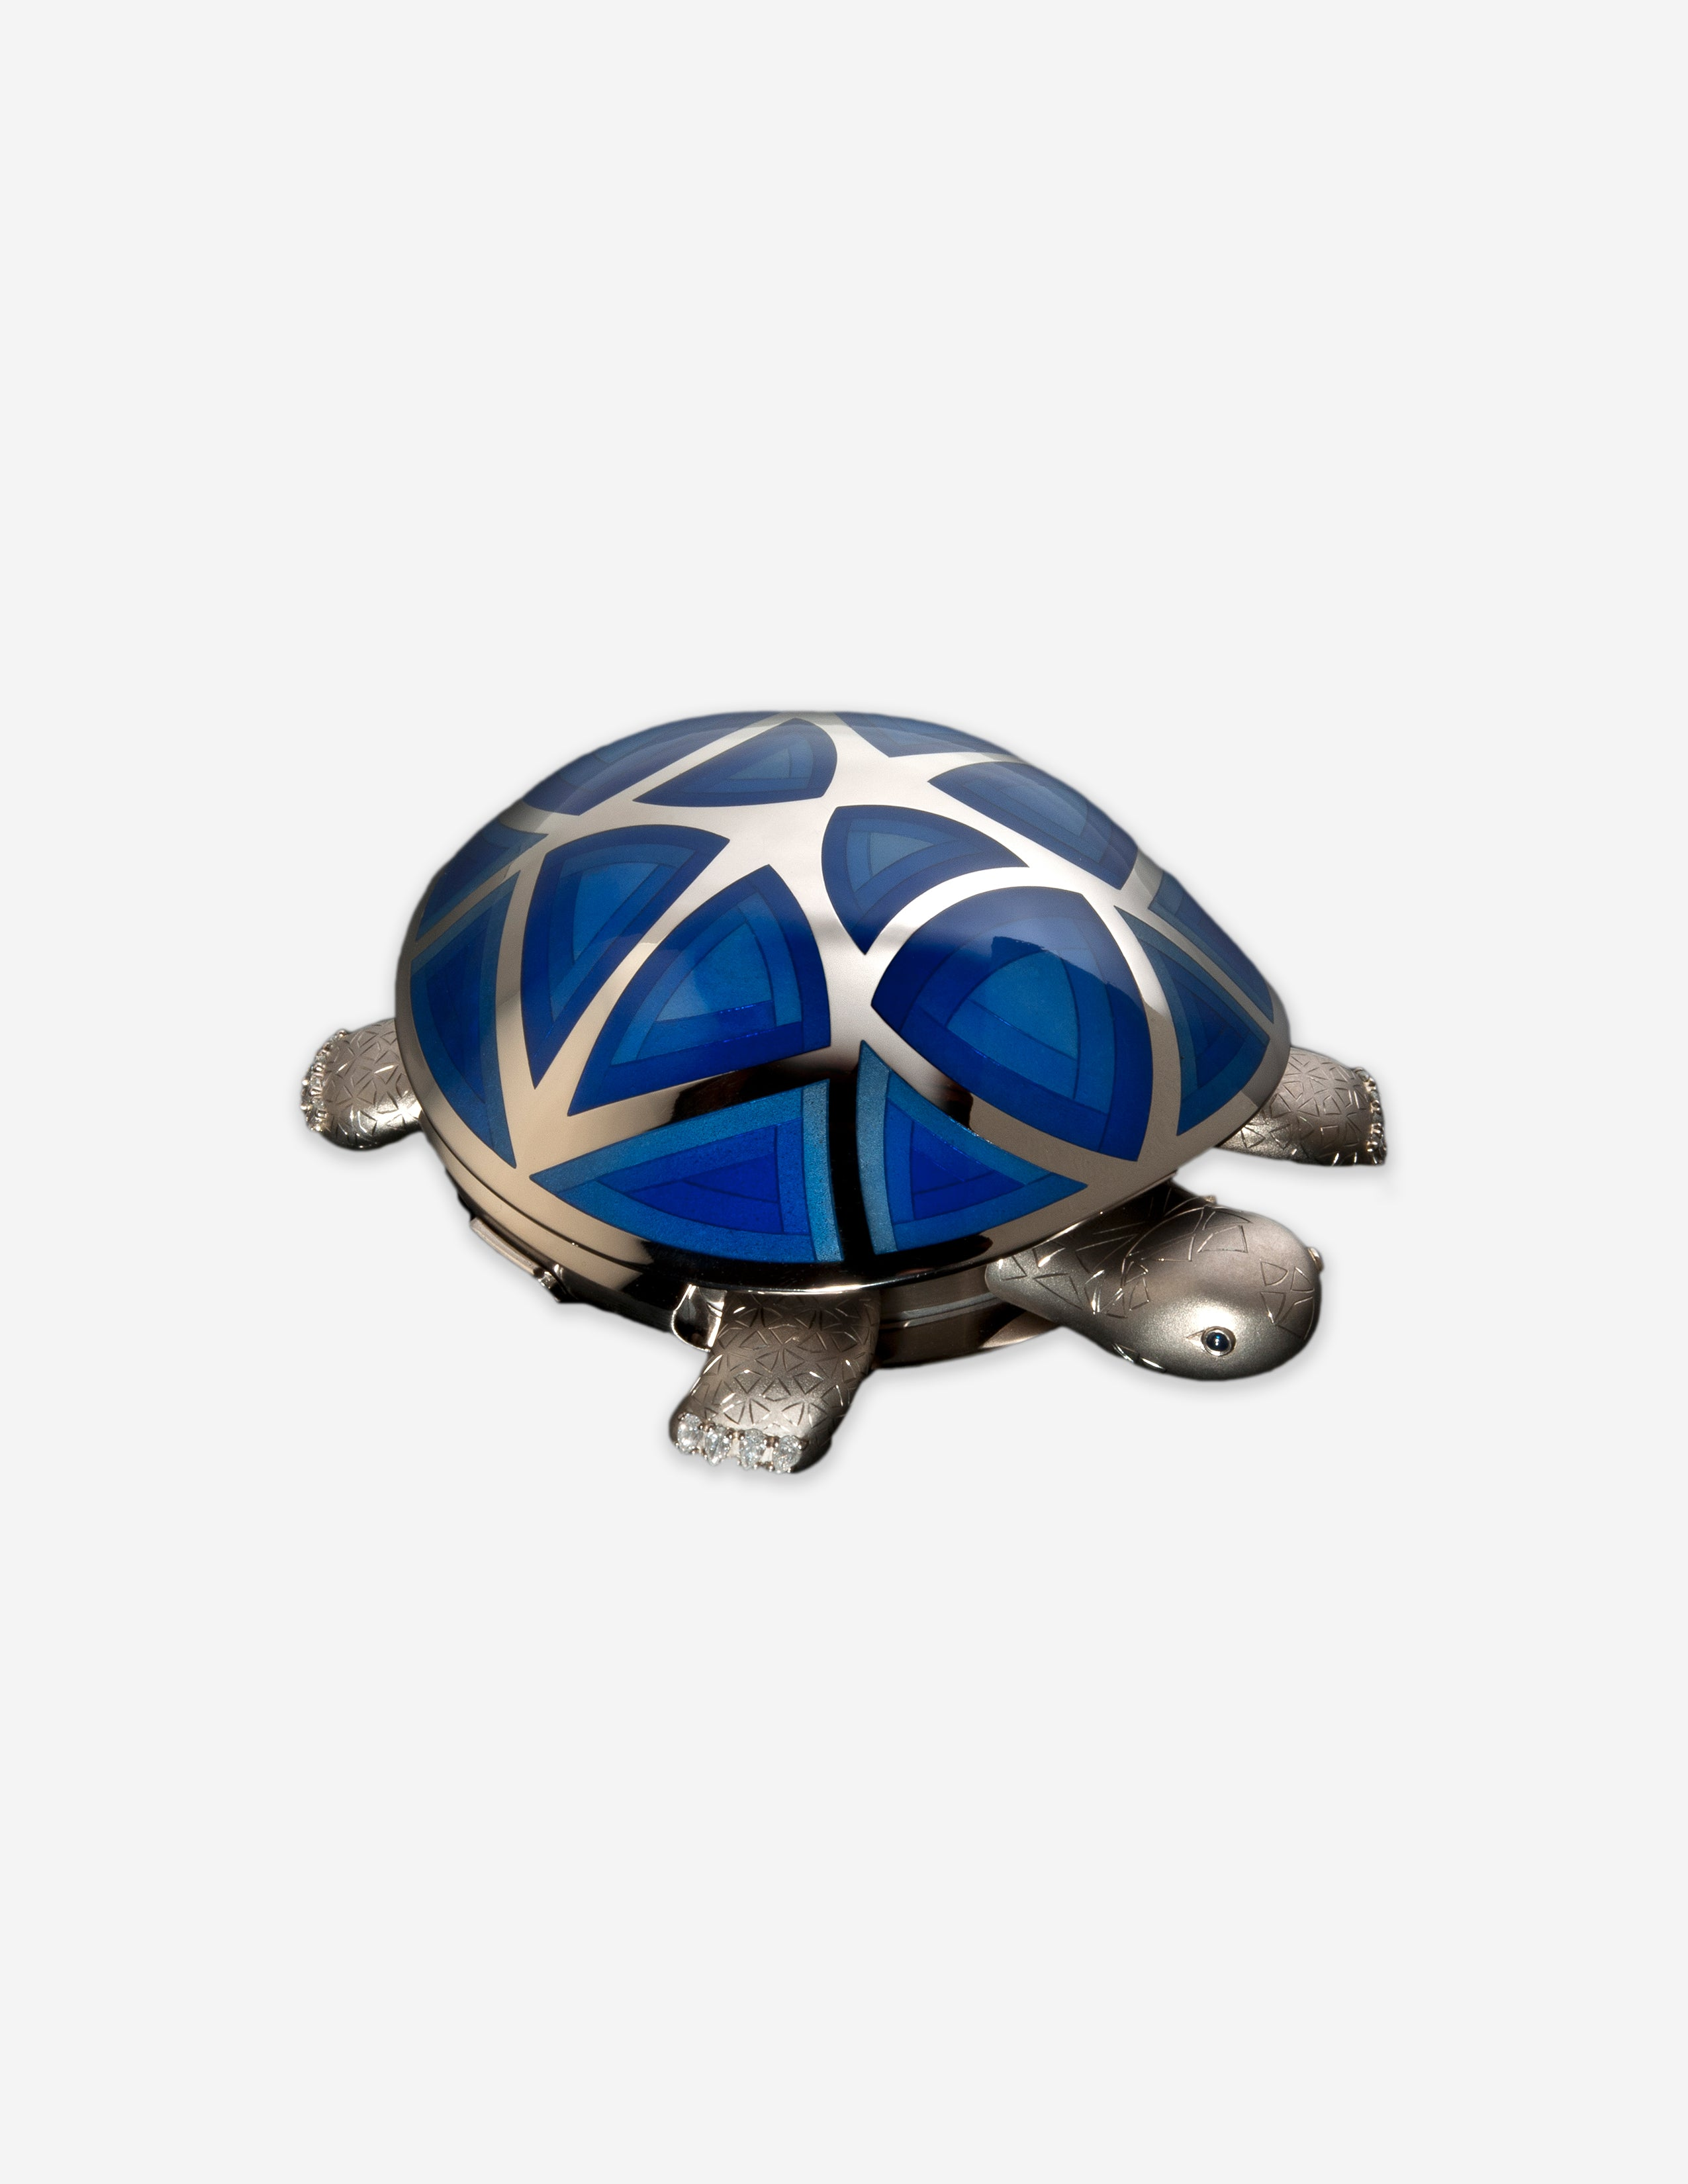 The Tortoise automation made by Raul Pages of Spain for A Collected Man London